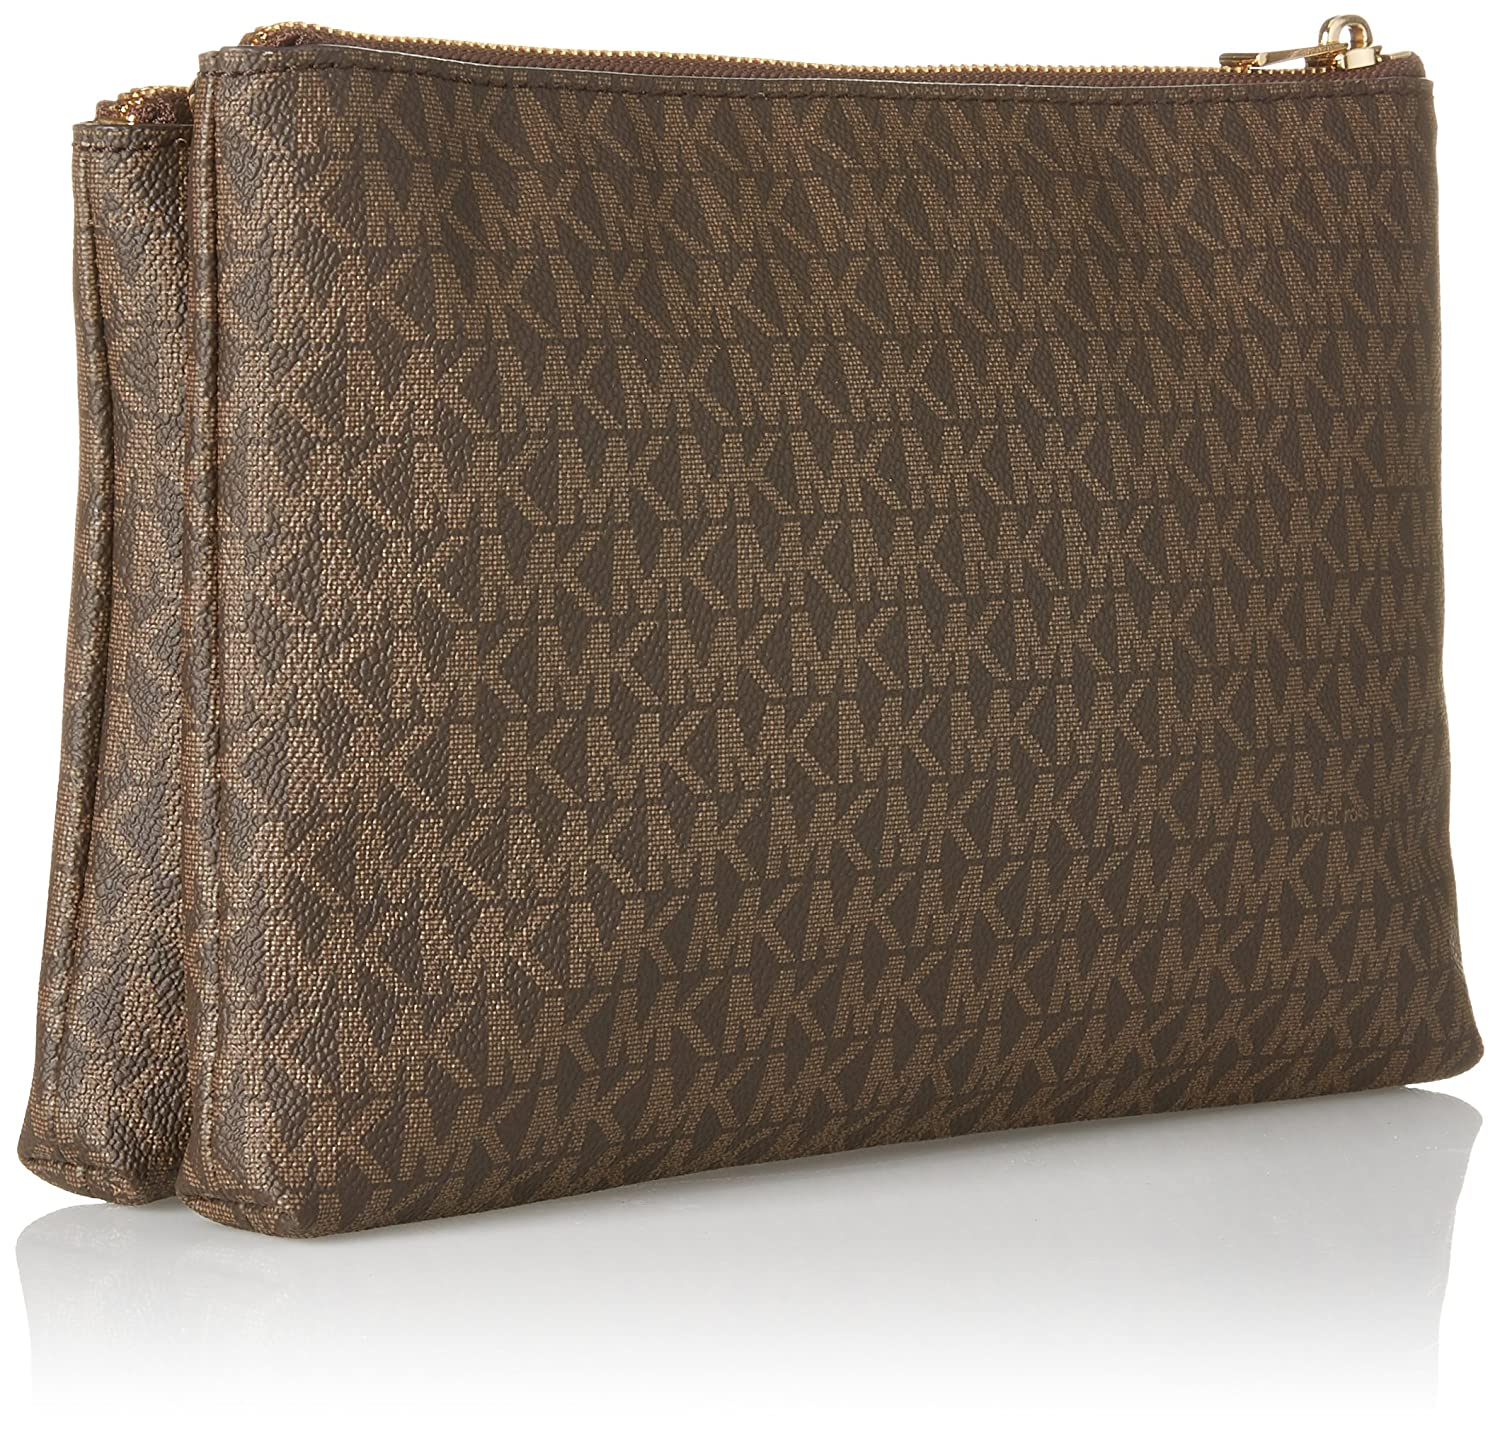 9d2eb9d0c5a5 MICHAEL Michael Kors Women s Adele Double Zip Wristlet  Handbags  Amazon.com